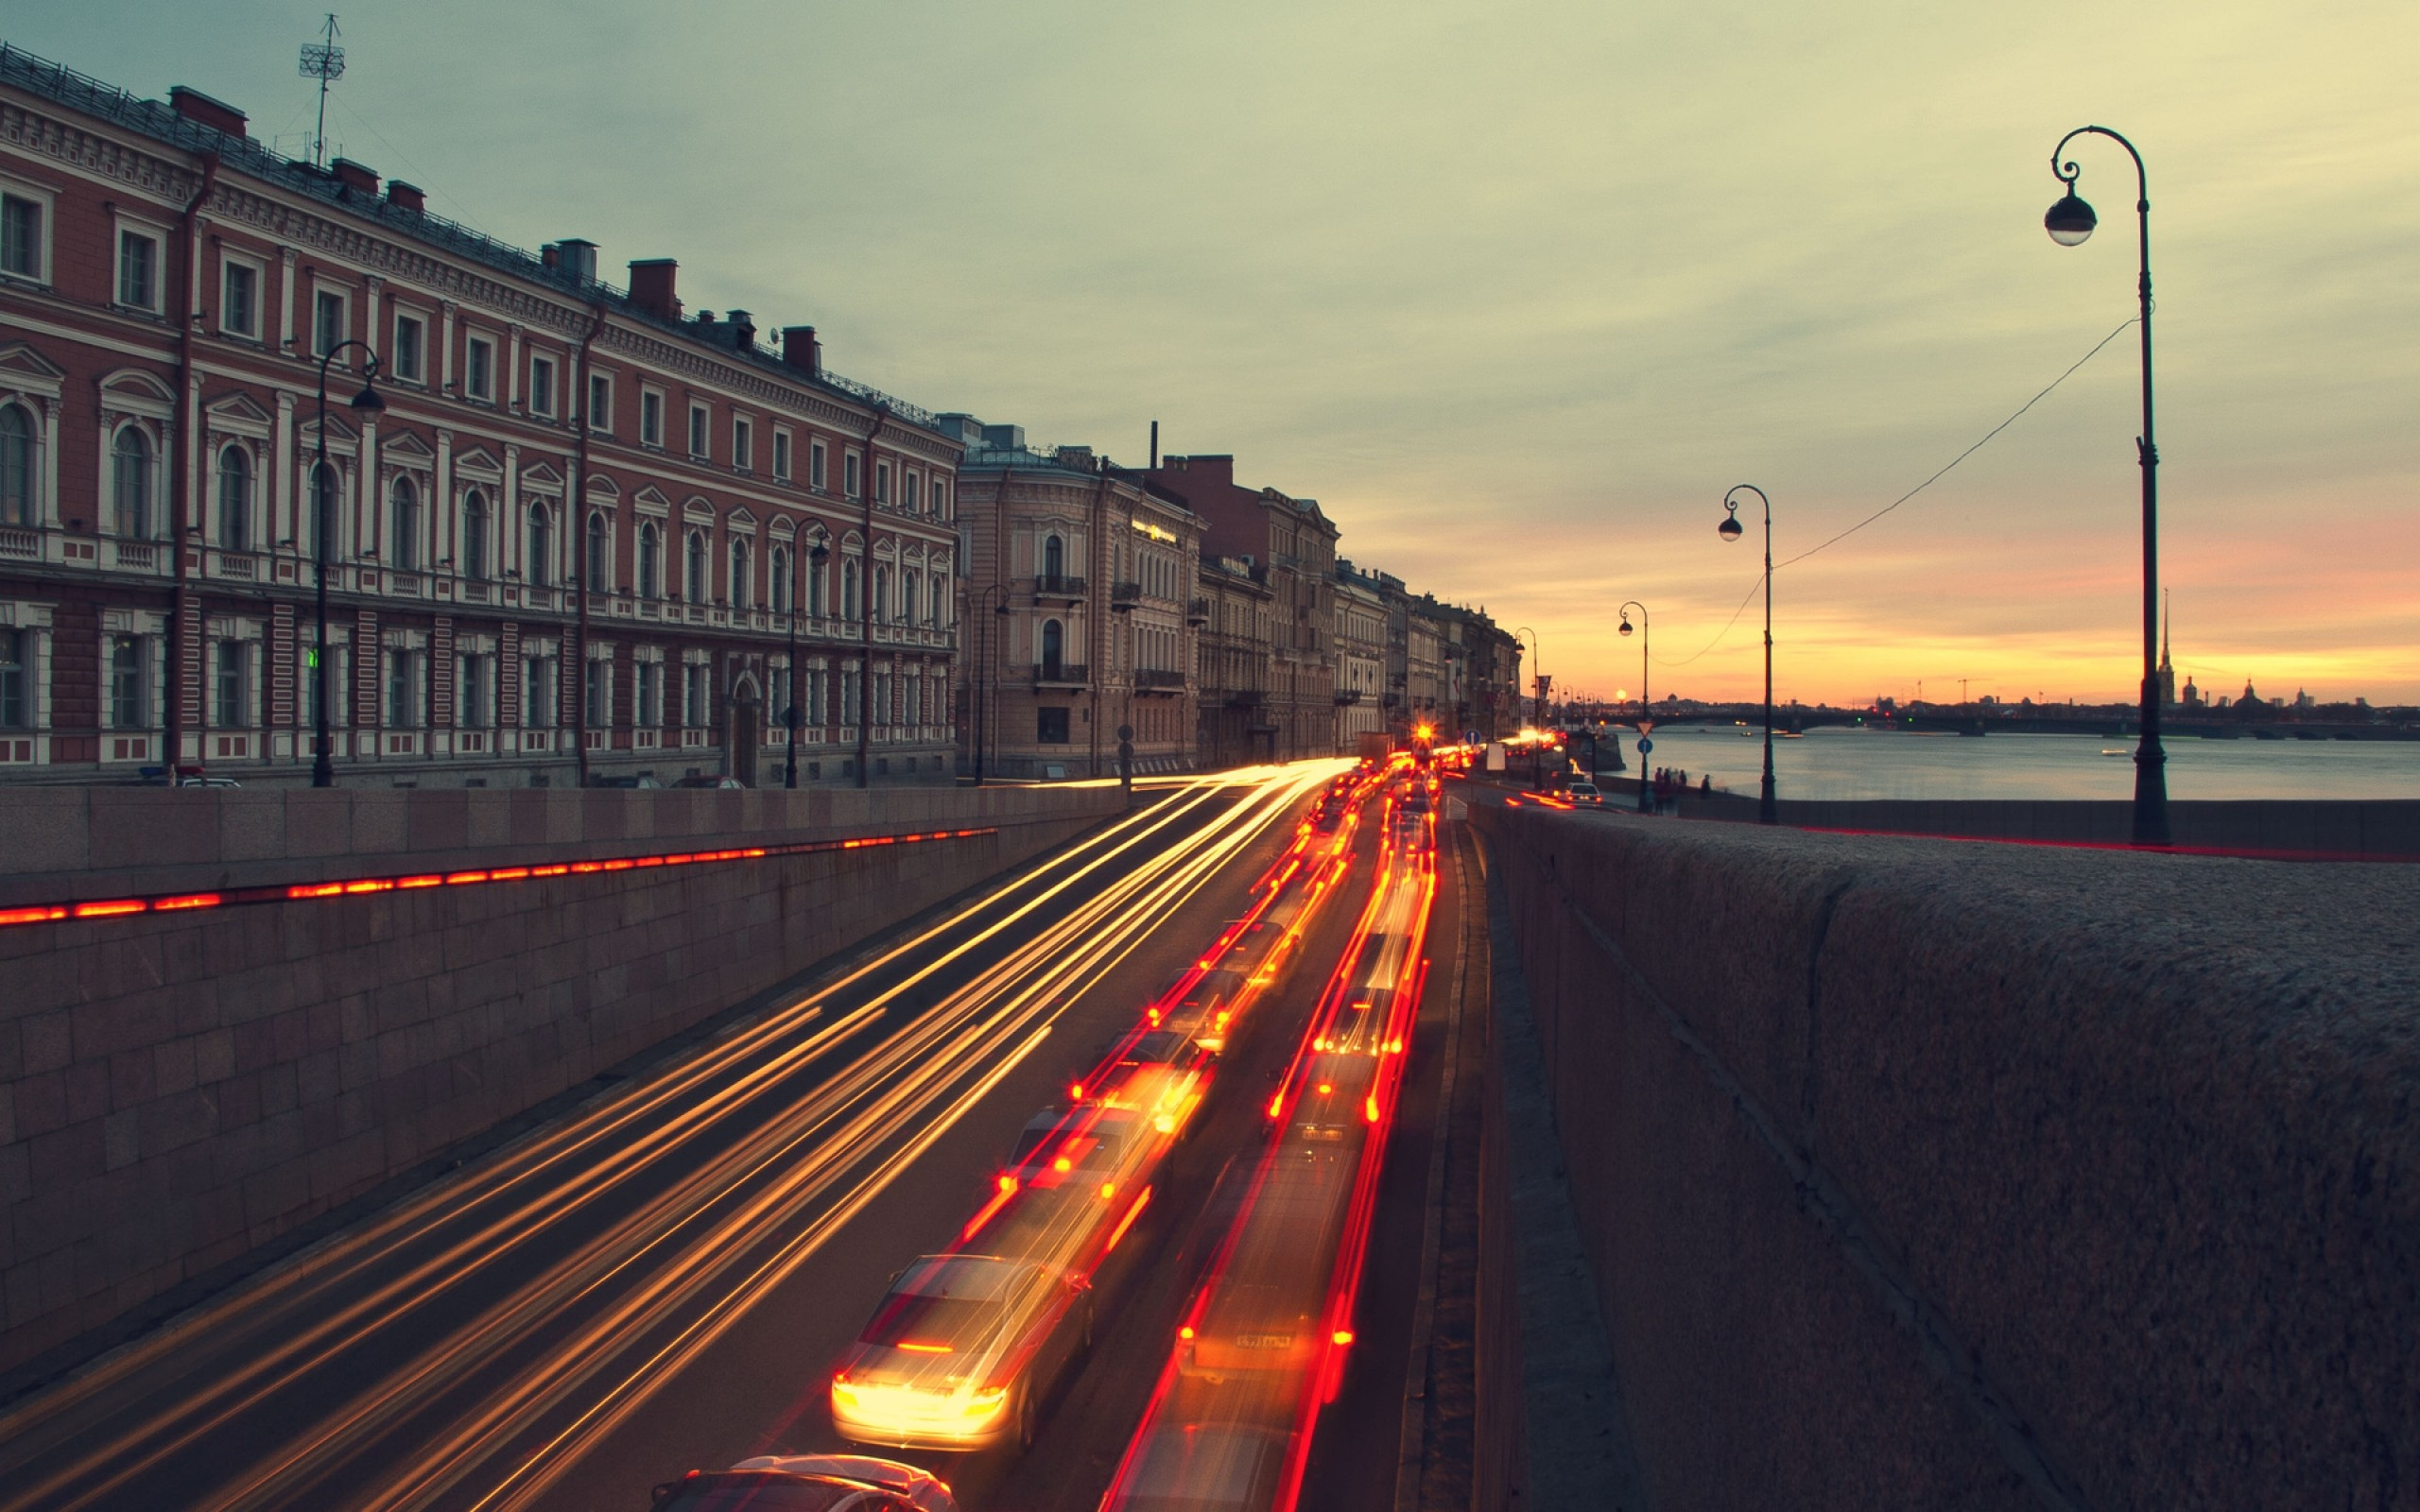 At sunset wallpapers saint petersburg at sunset stock photos